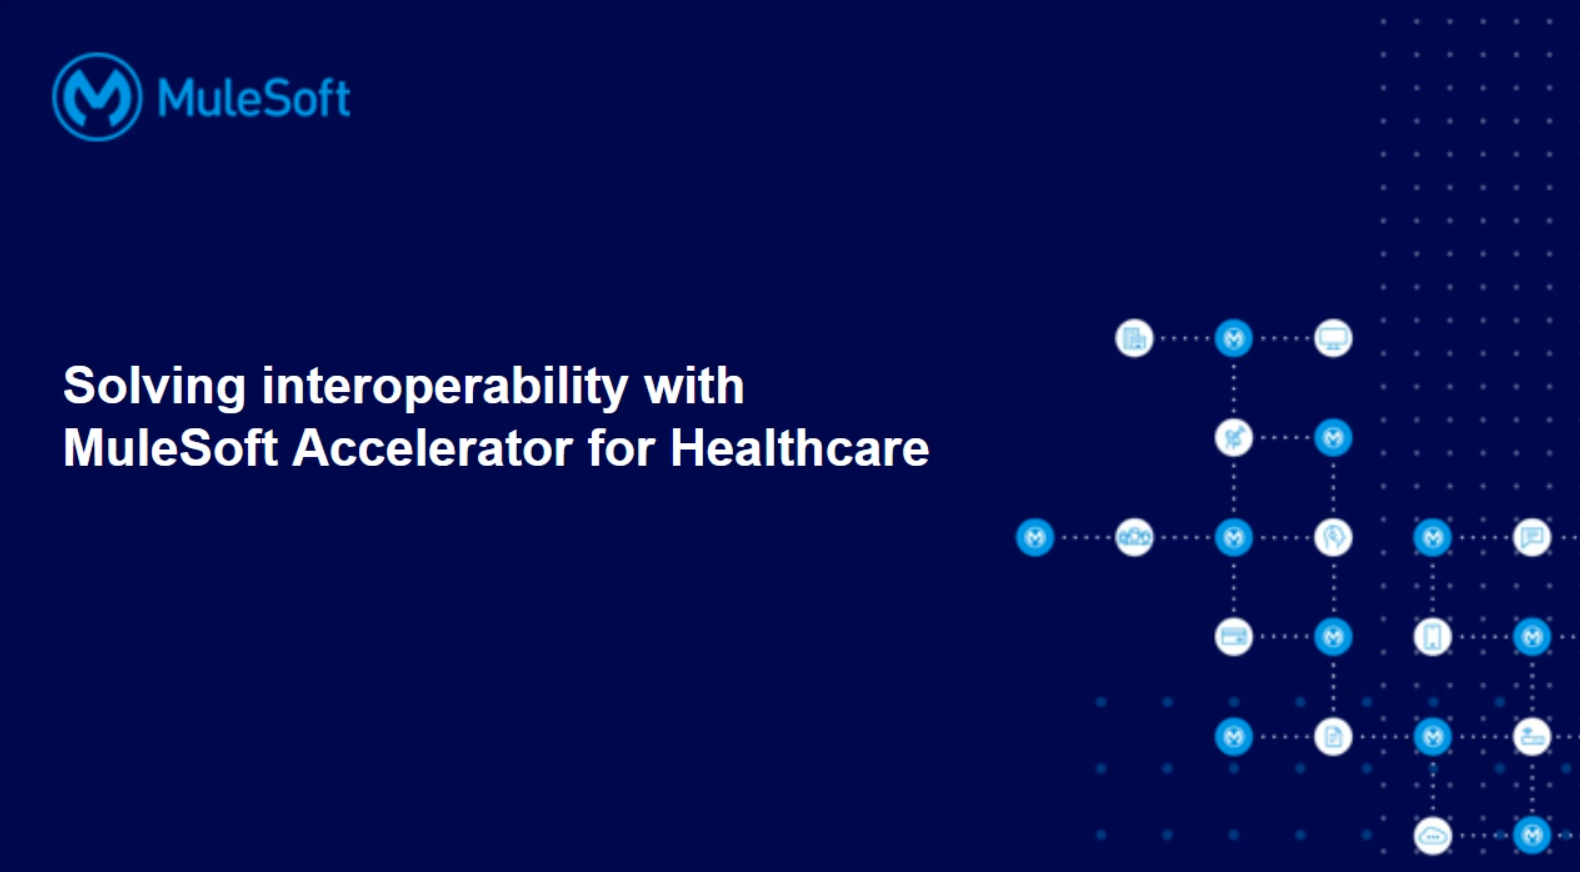 Solving interoperability with MuleSoft Accelerator for Healthcare